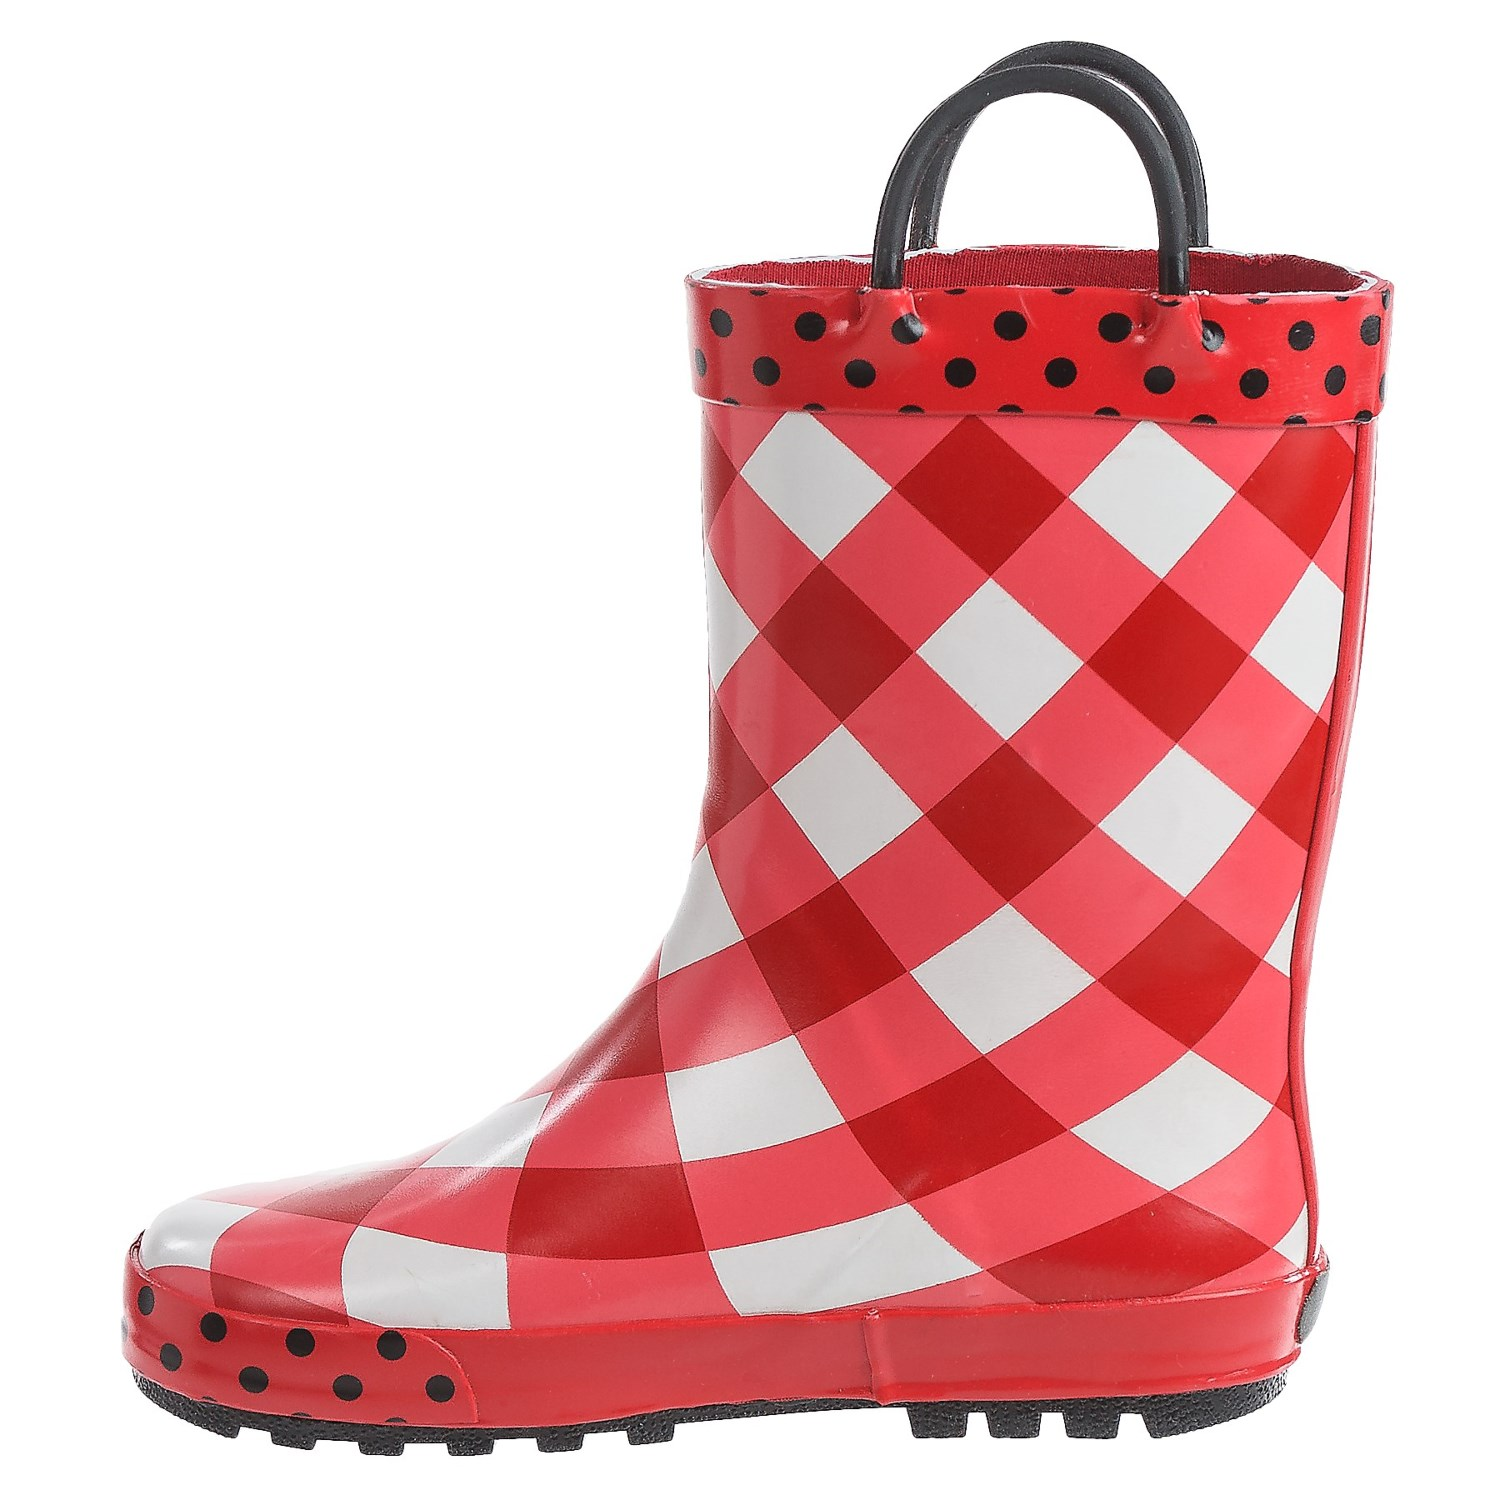 Kamik Ladybug Rain Boots (For Little and Big Girls) - Save 50%